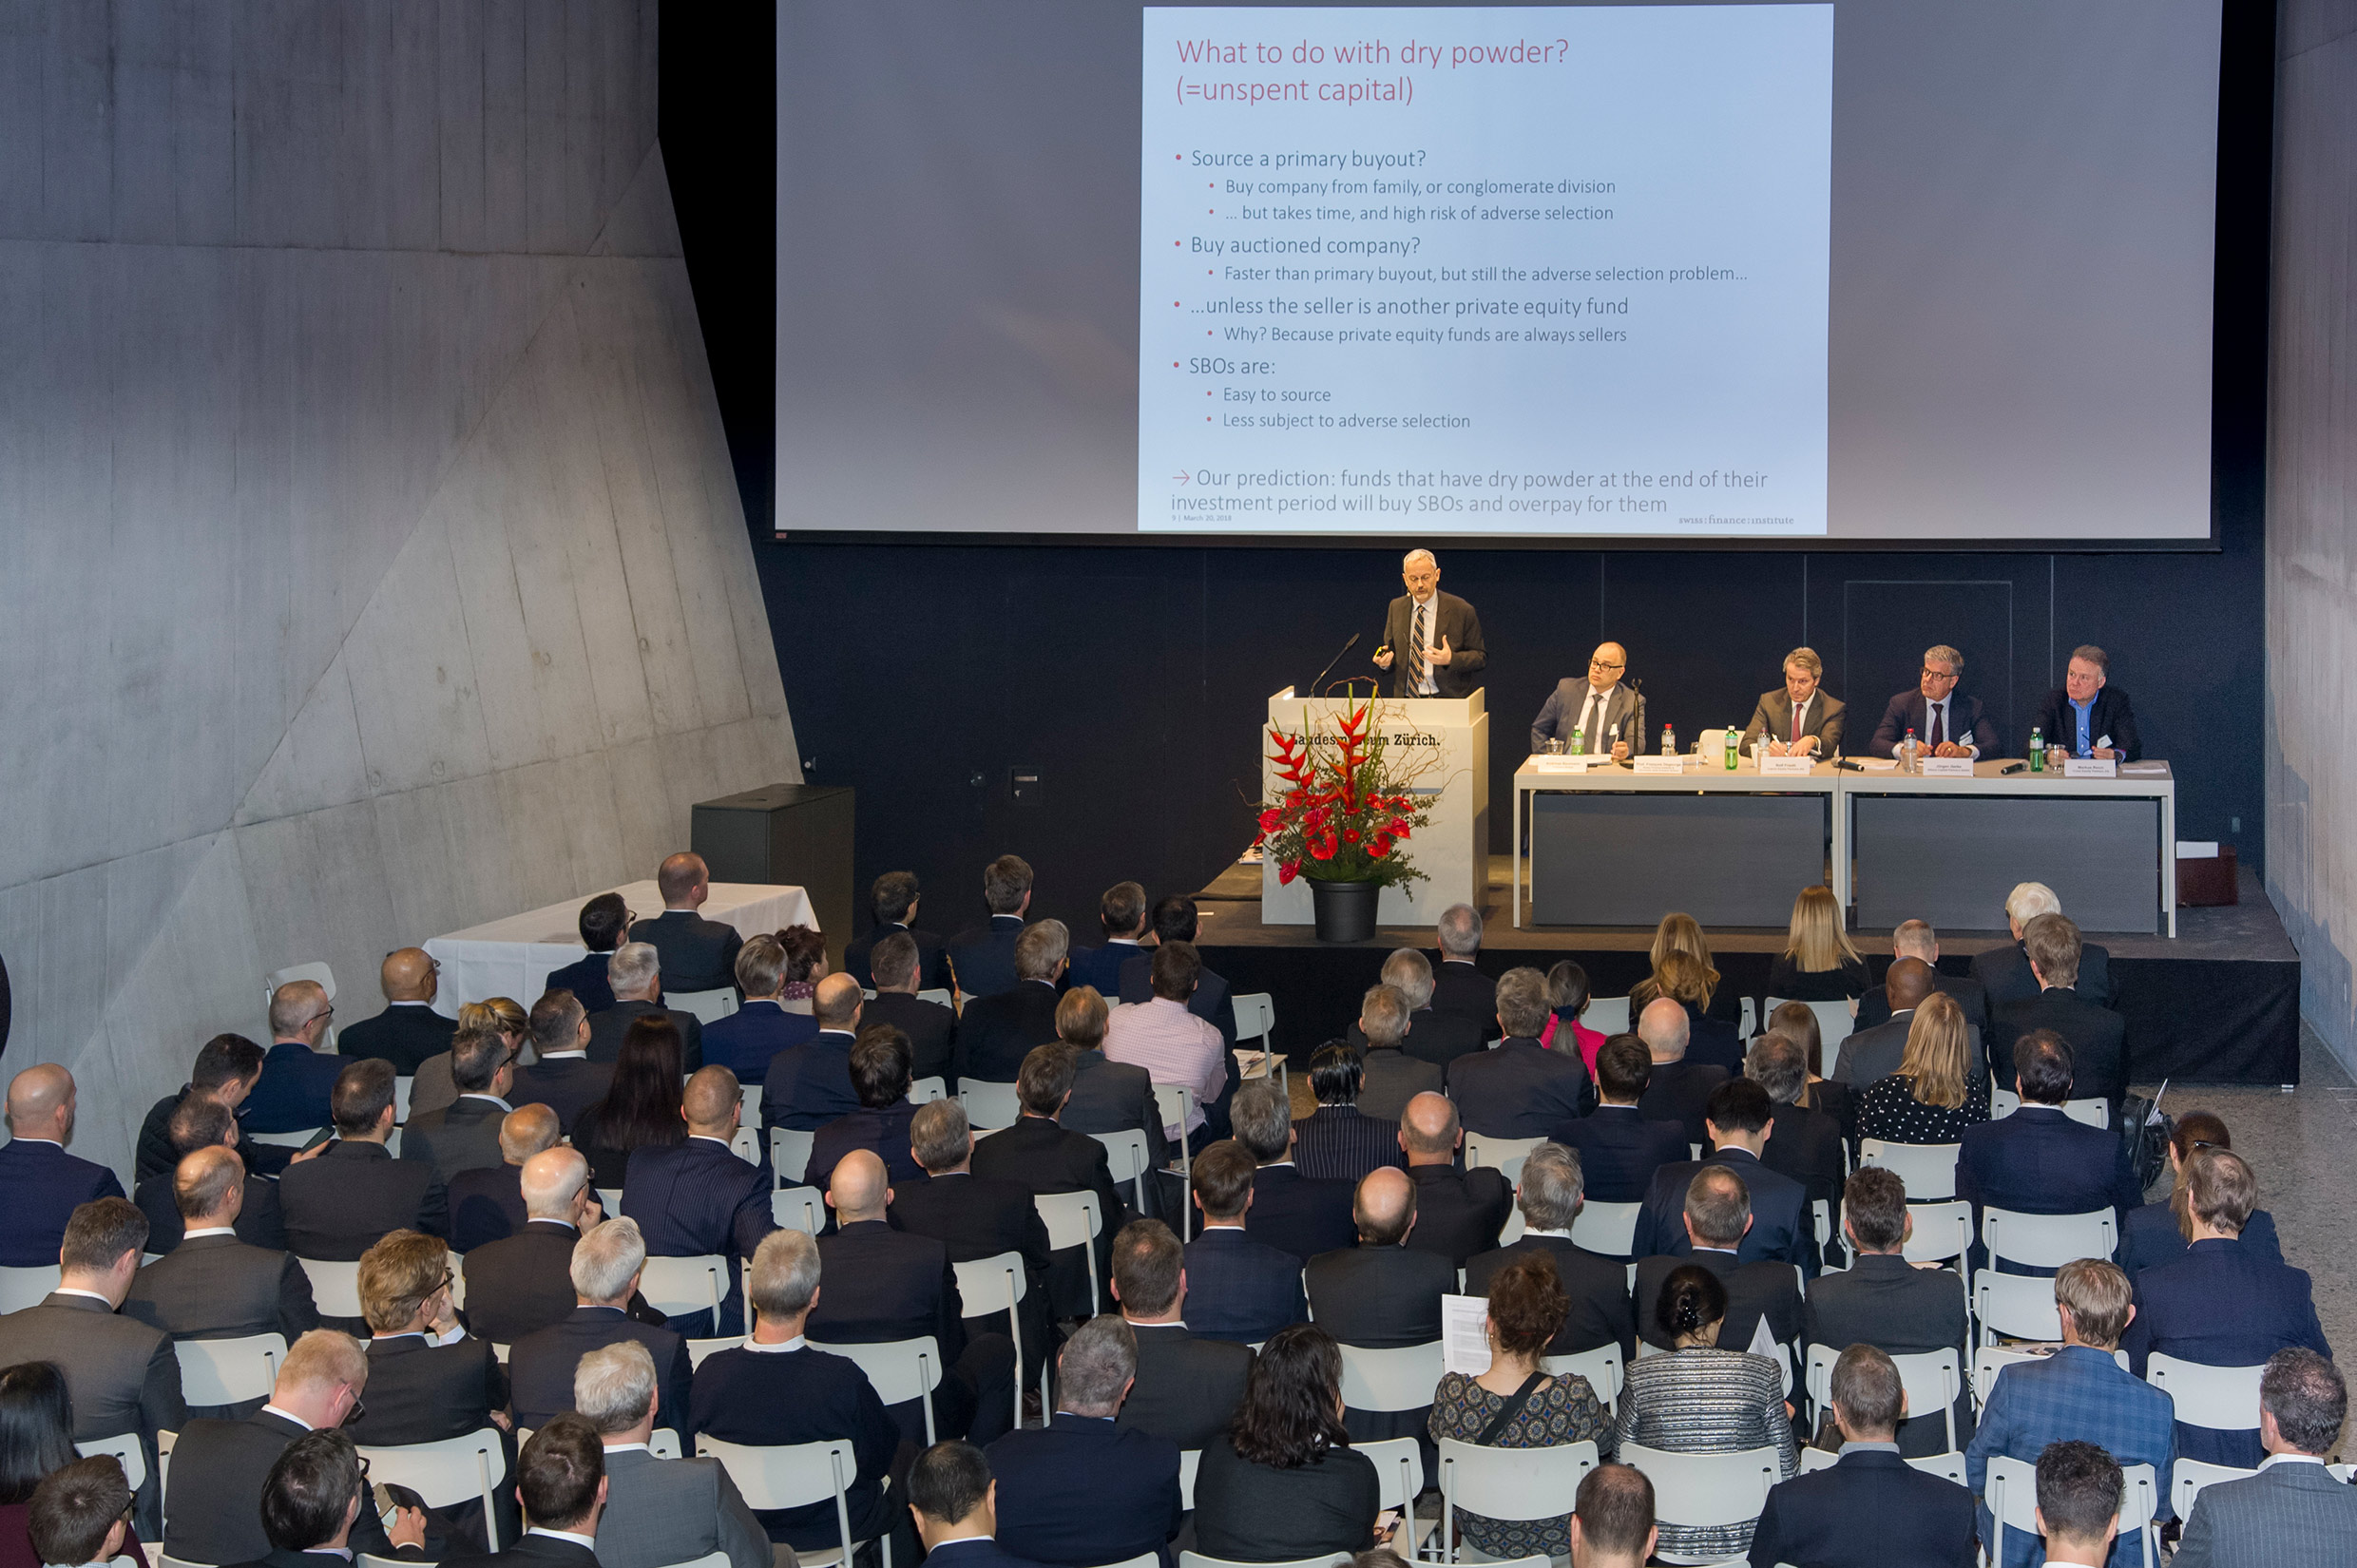 Sfi capco institute banking finance forum swiss finance institute 126 buycottarizona Image collections